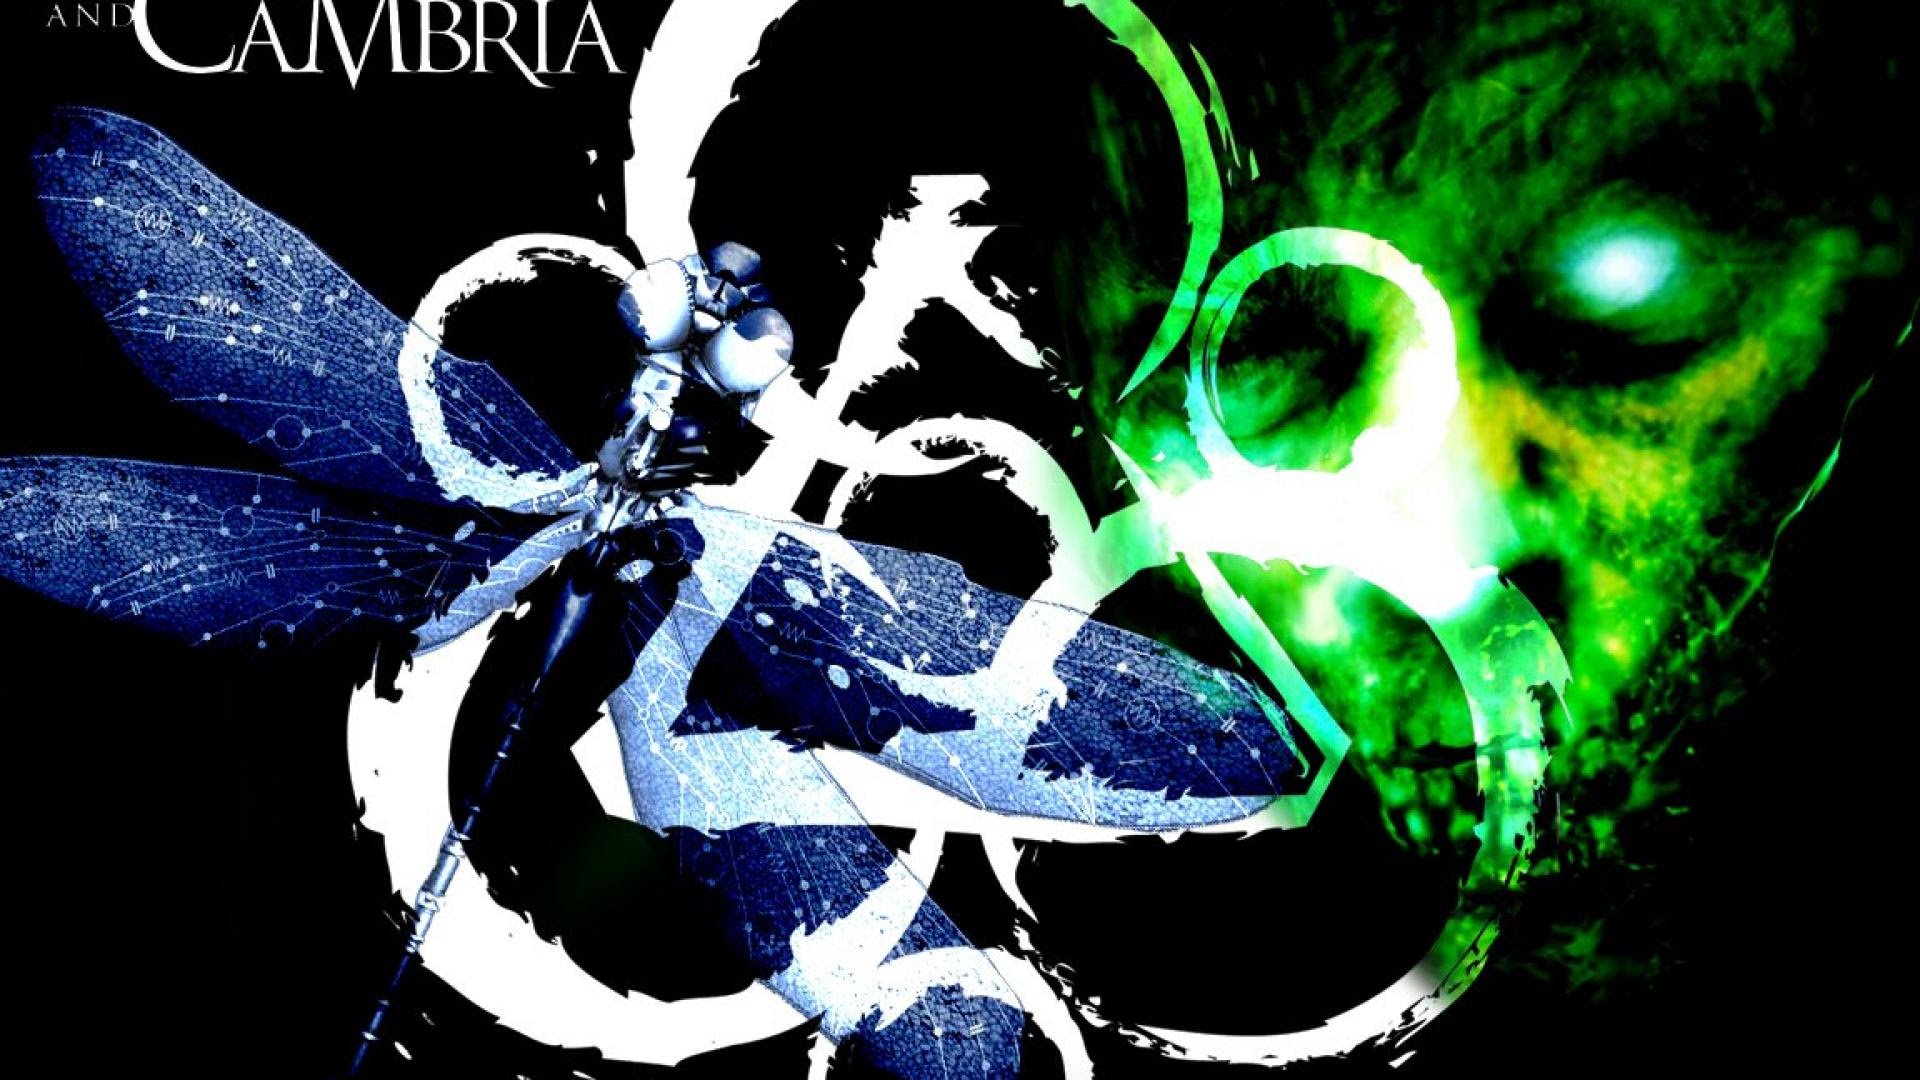 30 Image For Ipad Coheed And Cambria